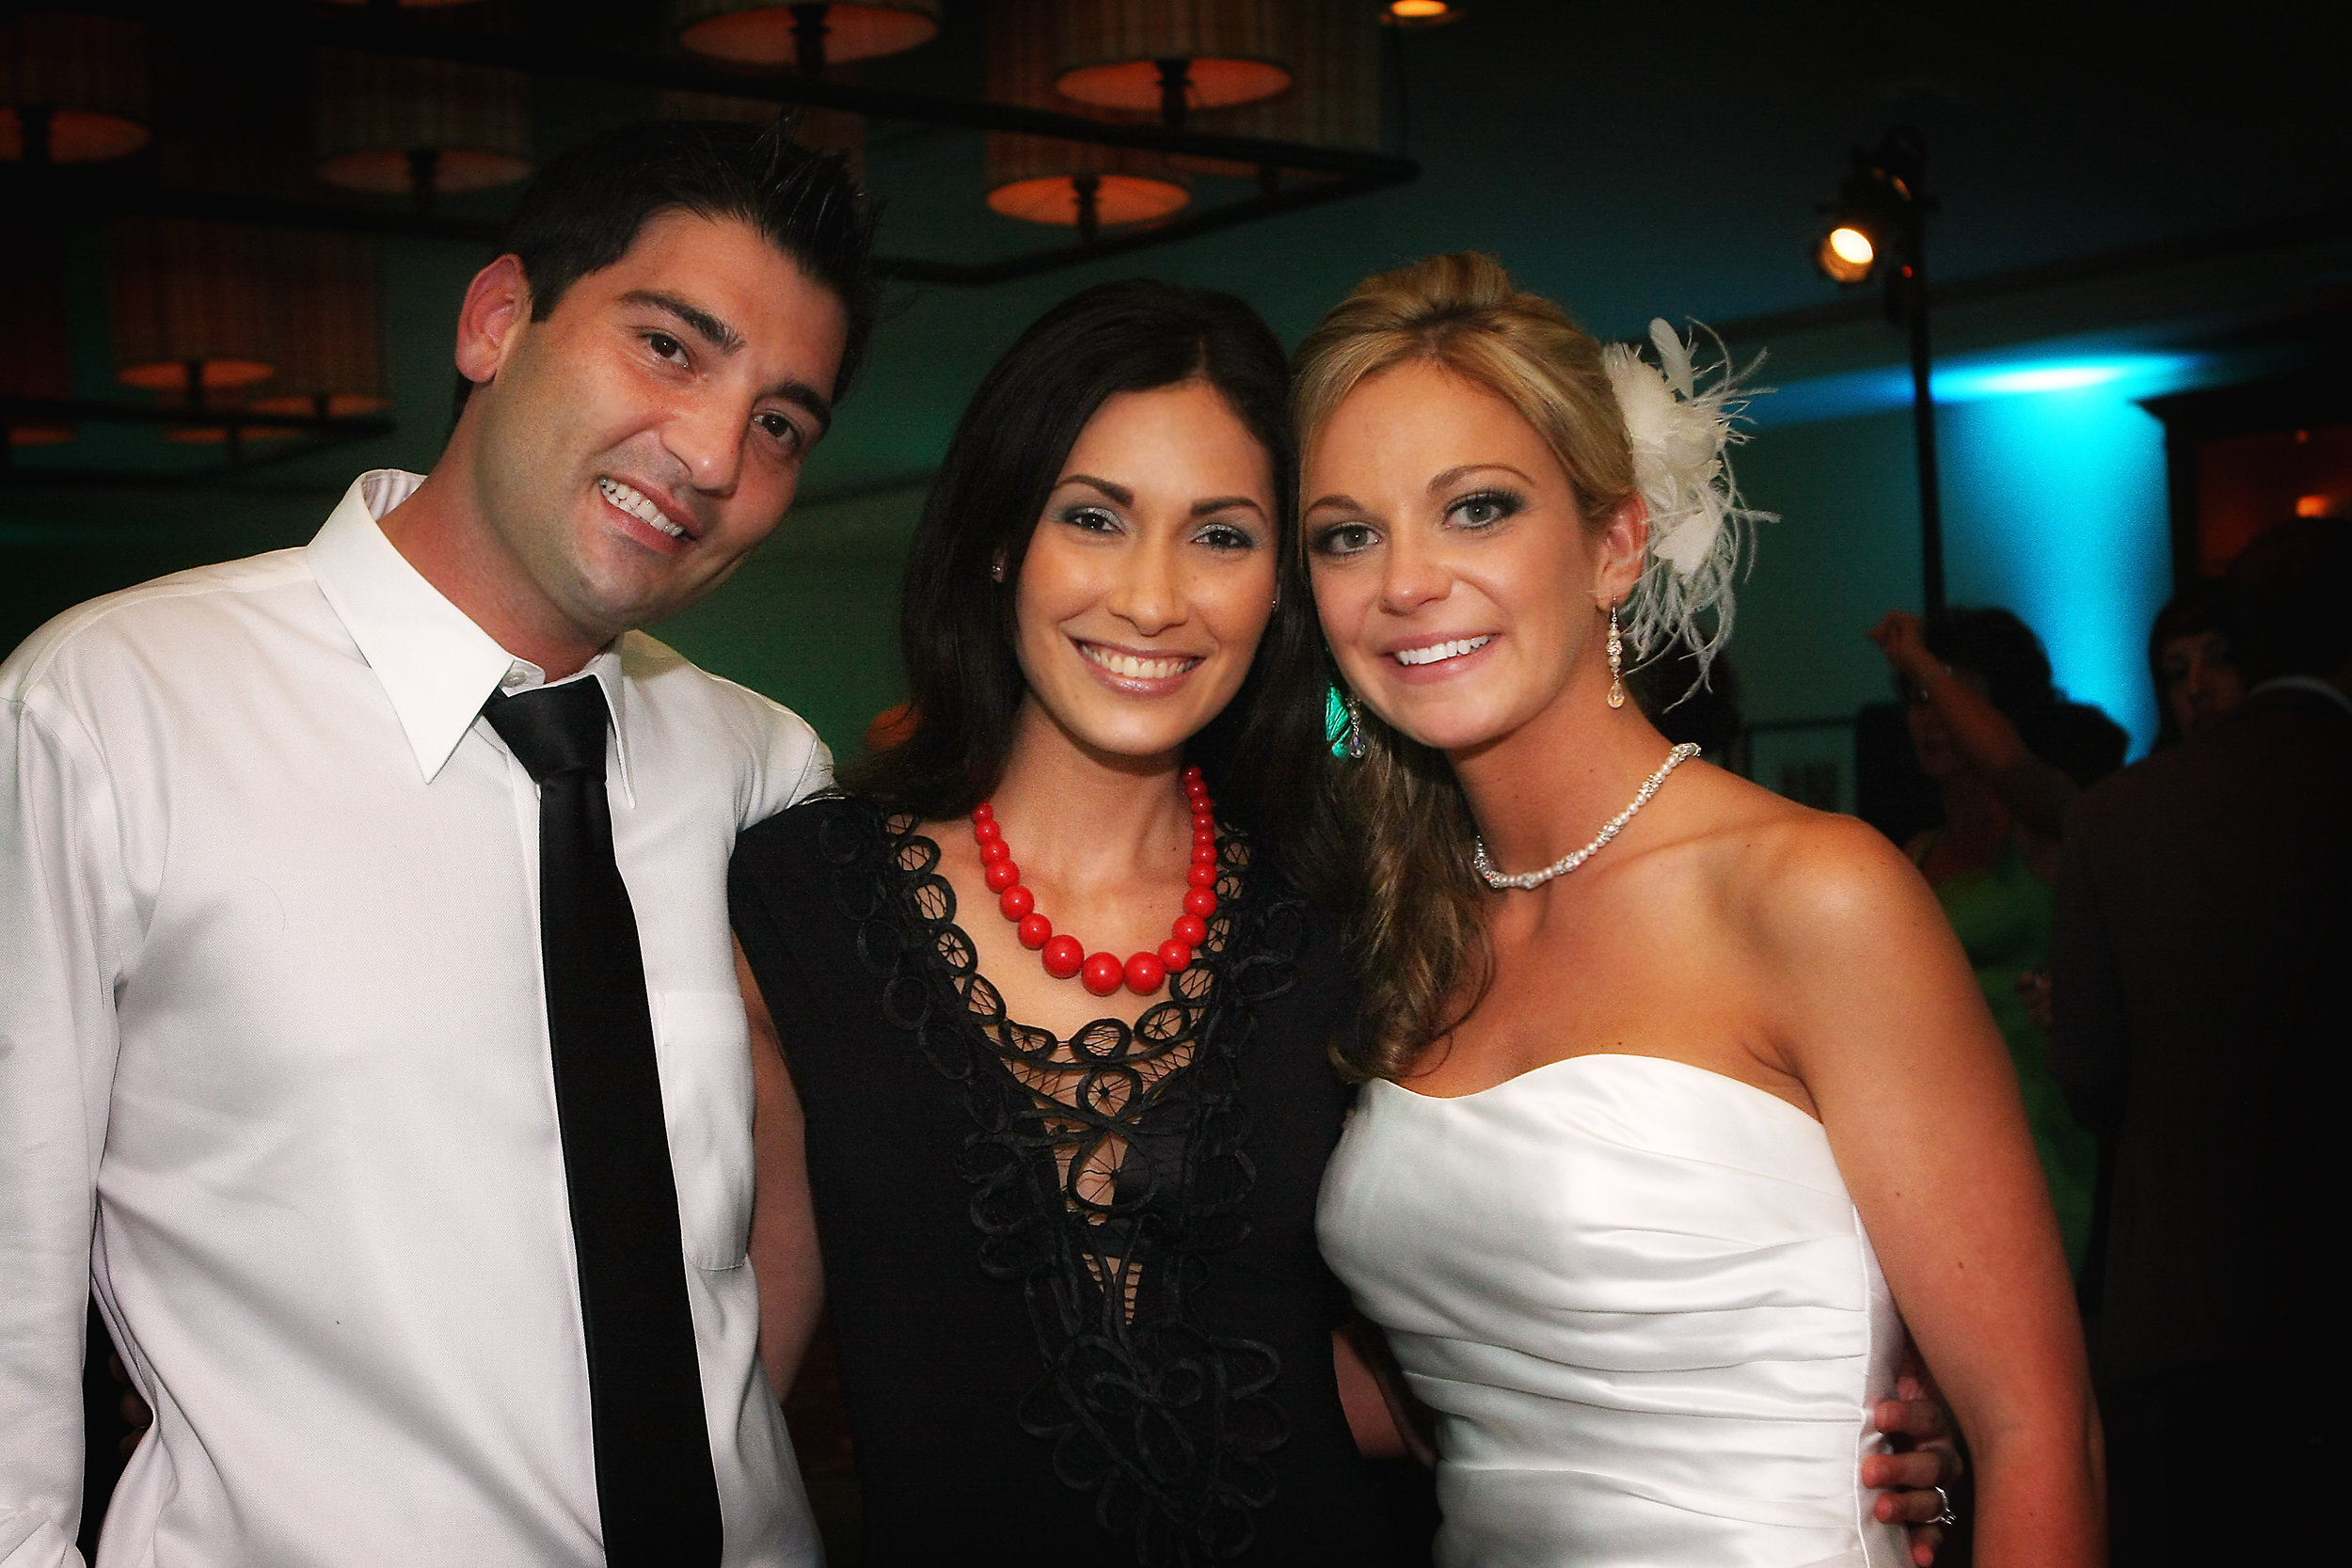 Dalice, Brittany and Atef.JPG